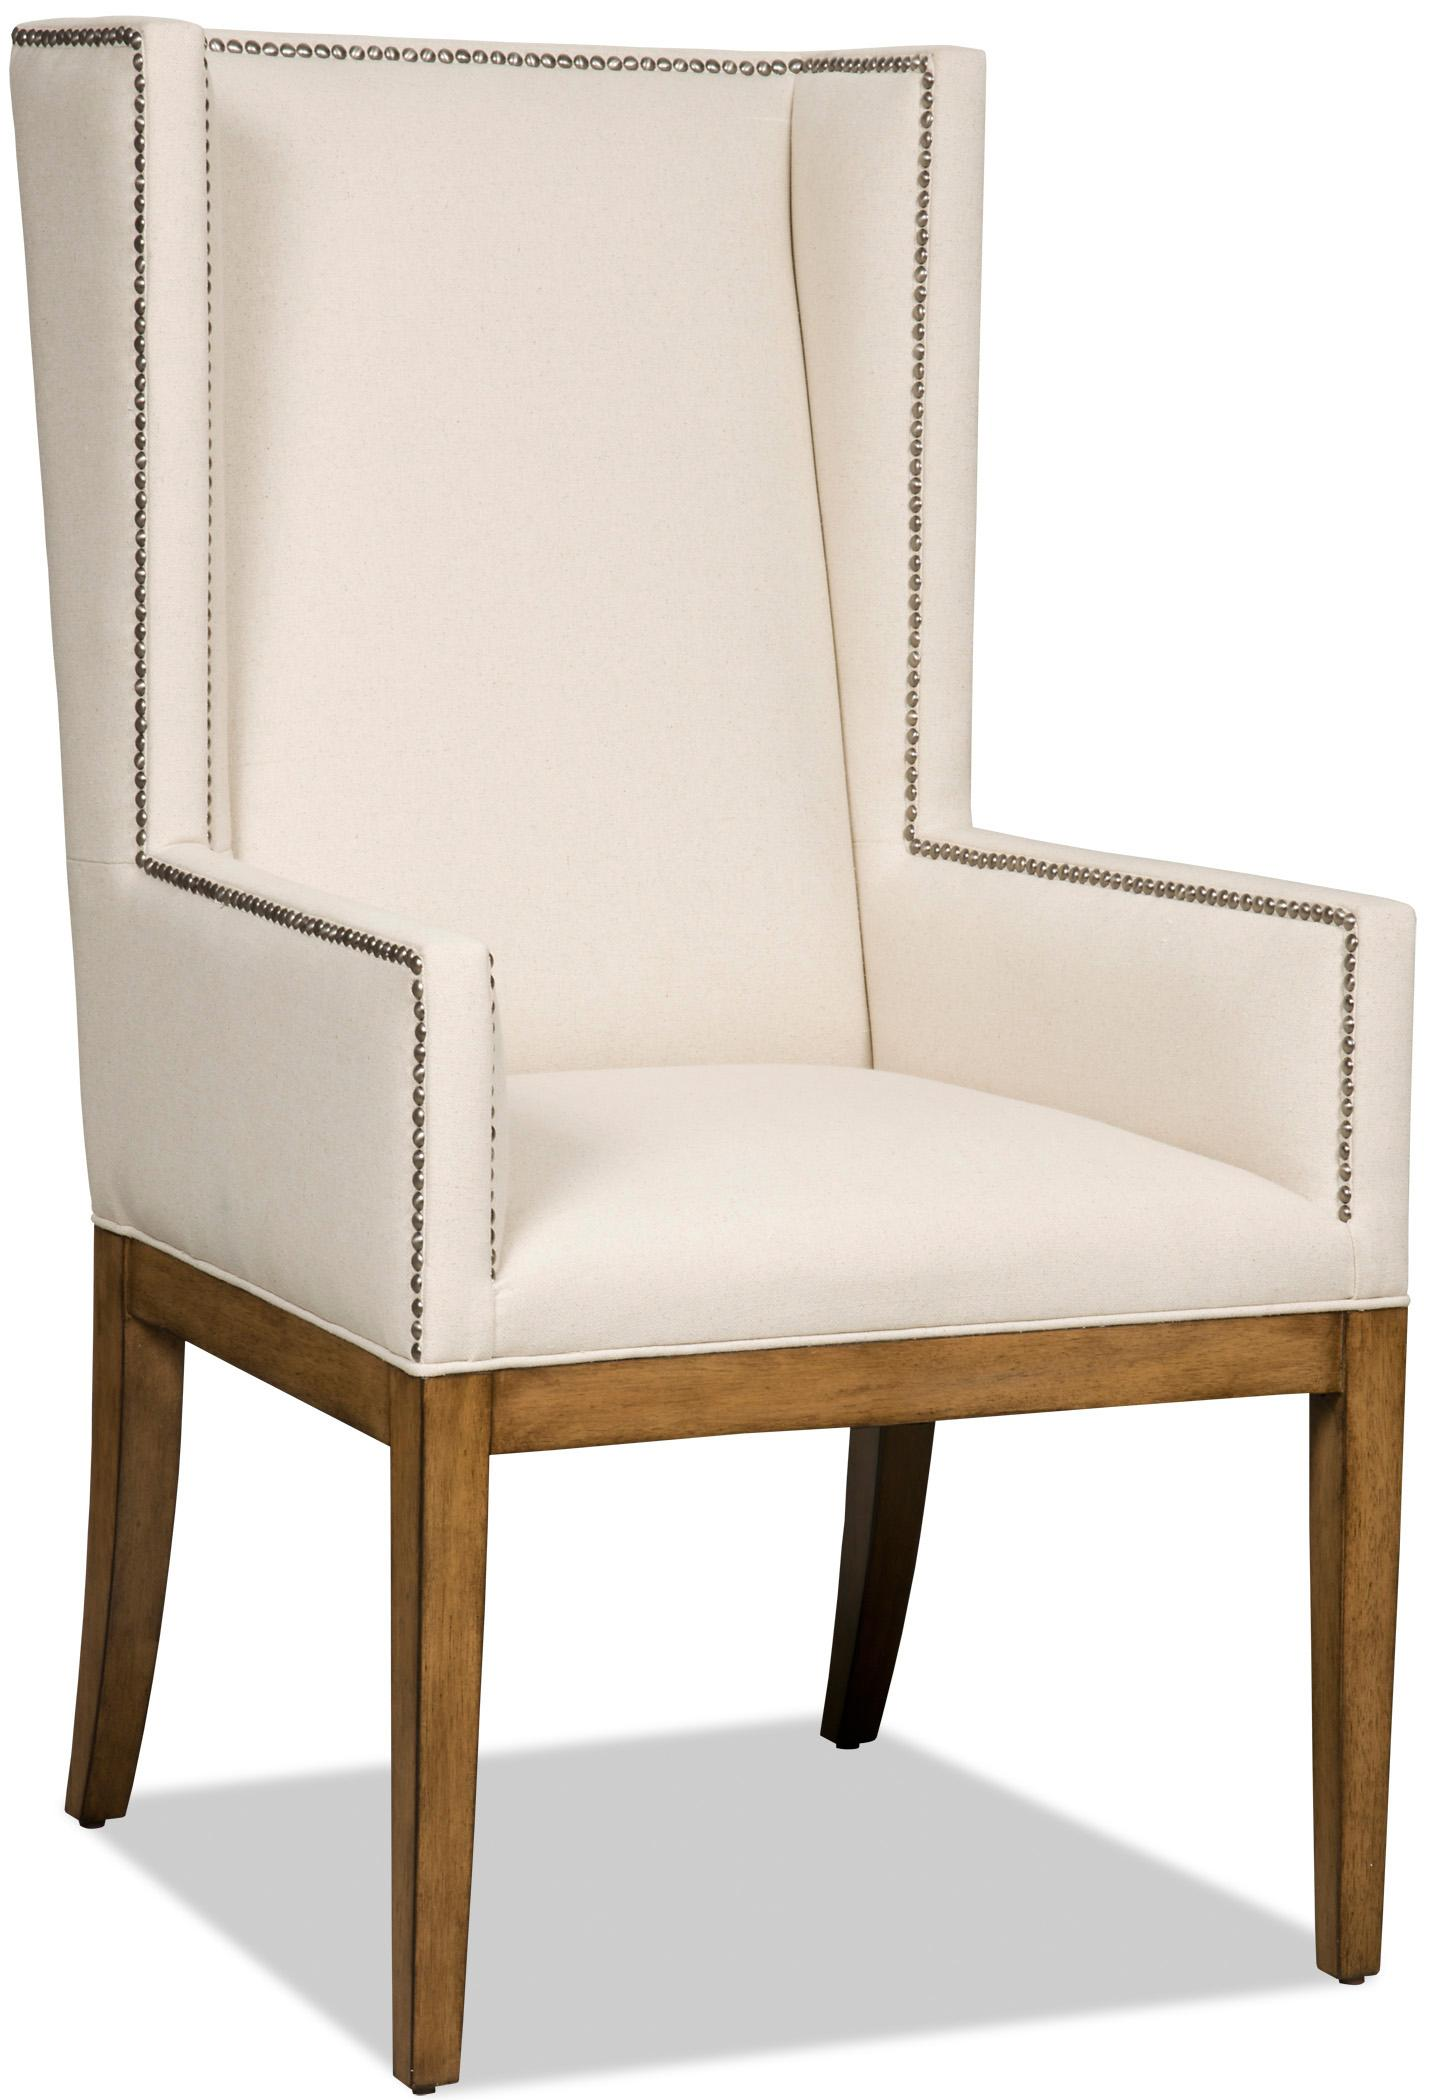 Hamilton Home Dining Chairs Upholstered Dining Chair with Wing